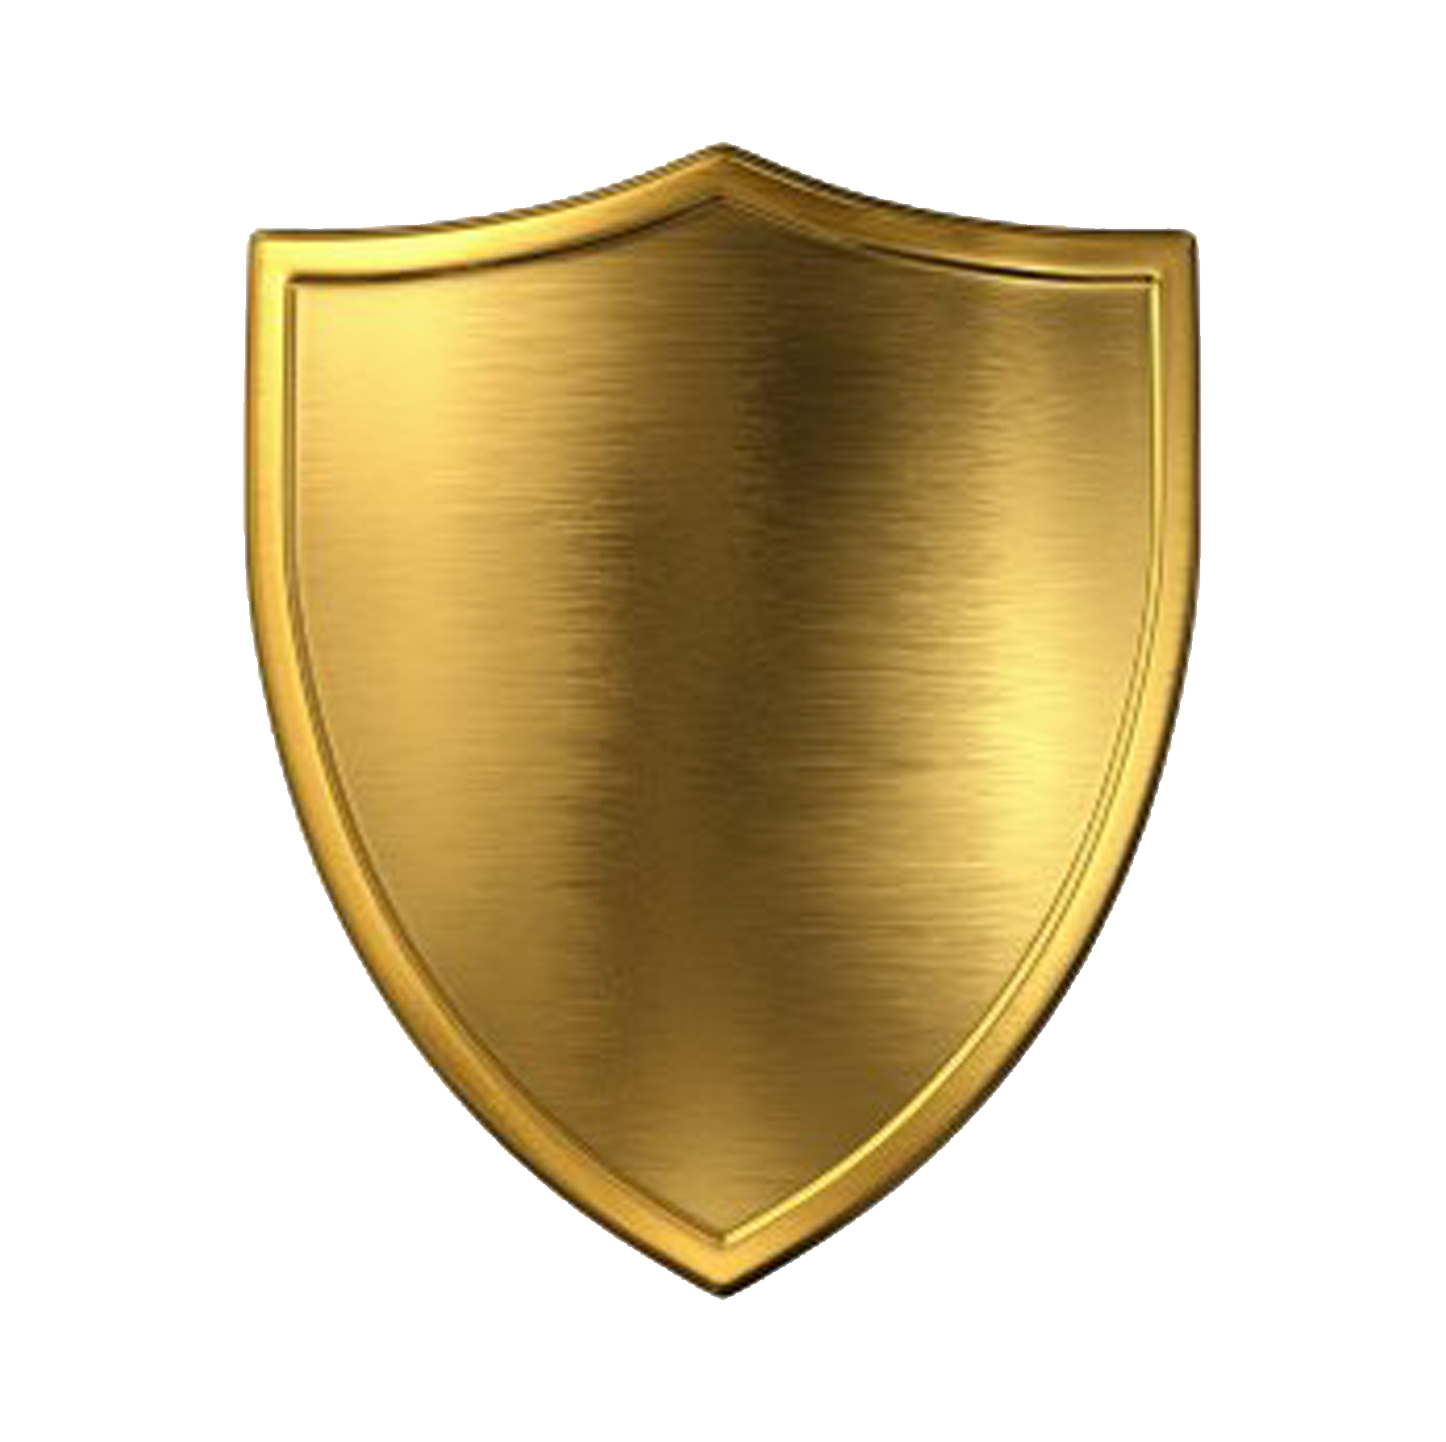 10 Modern Shield Design Images